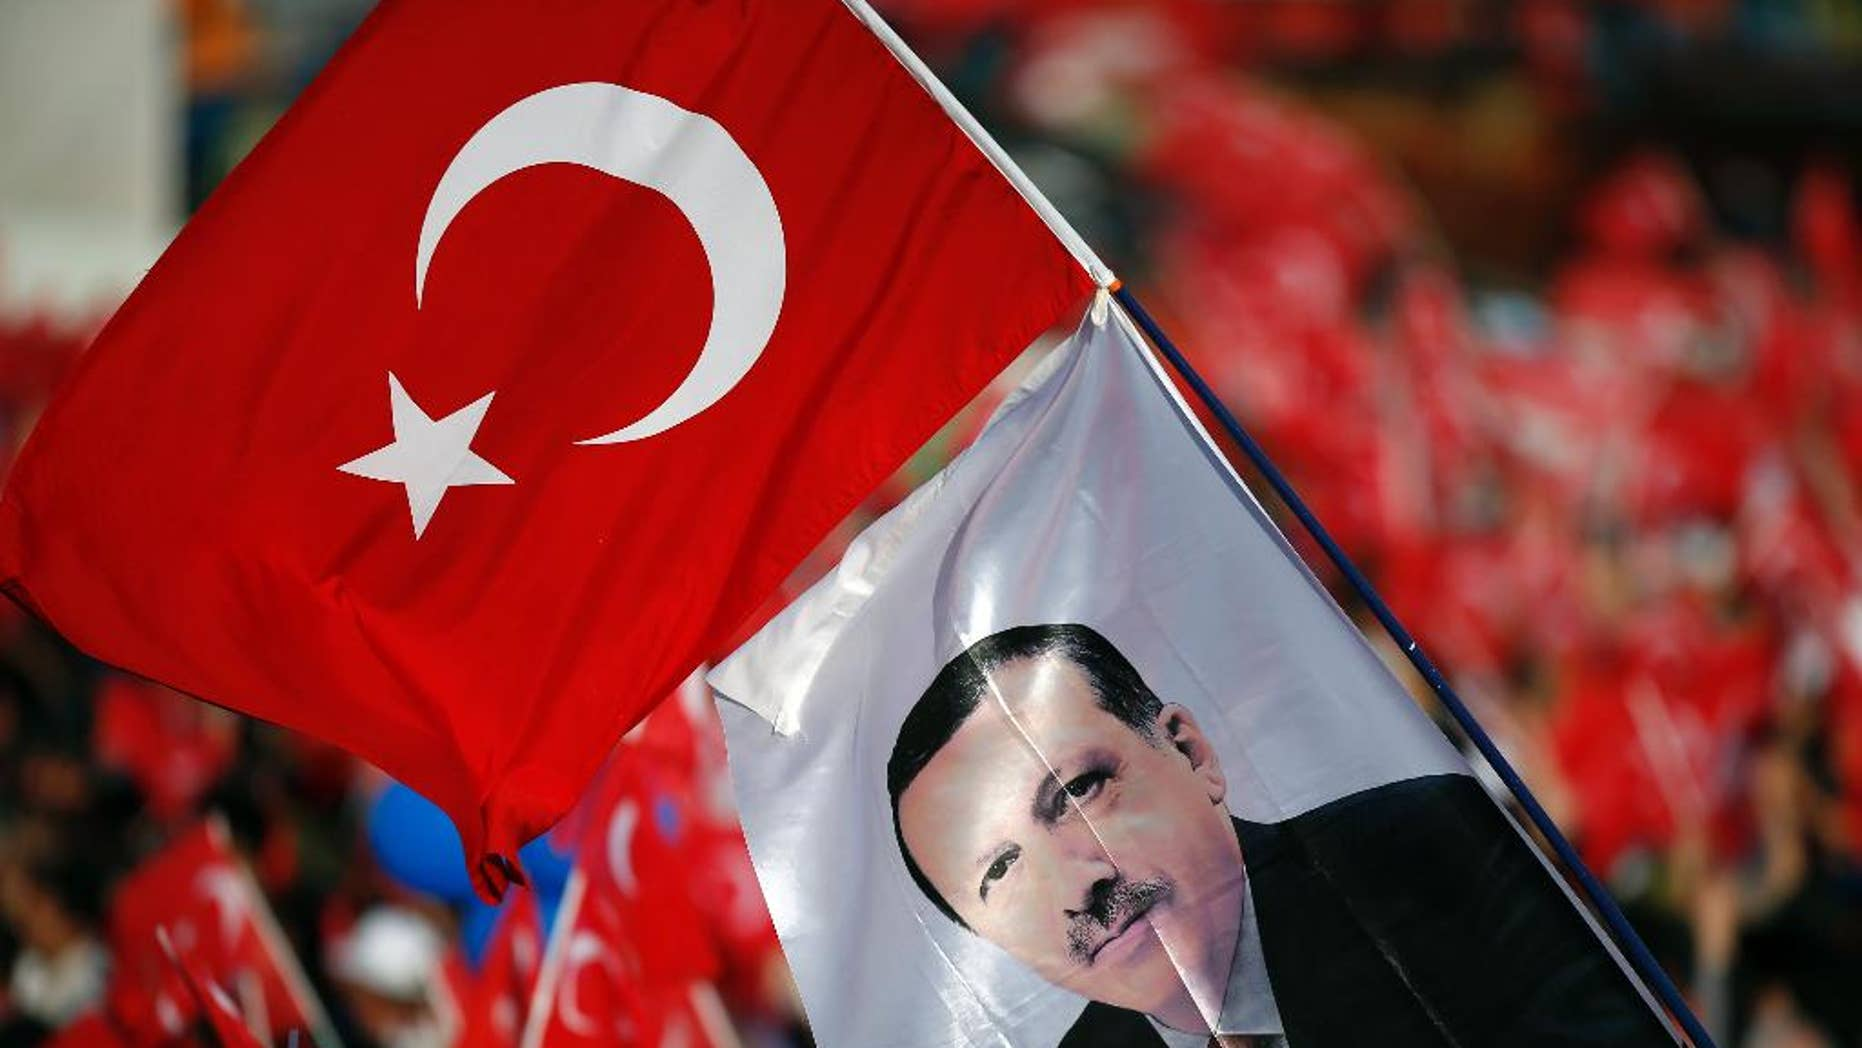 People wave national flags with an image of Turkey's President Recep Tayyip Erdogan during celebrations marking the 563rd anniversary of the Ottoman conquest of Constantinople, now Istanbul, in Istanbul, Turkey, Sunday, May 29, 2016. (AP Photo/Emrah Gurel)